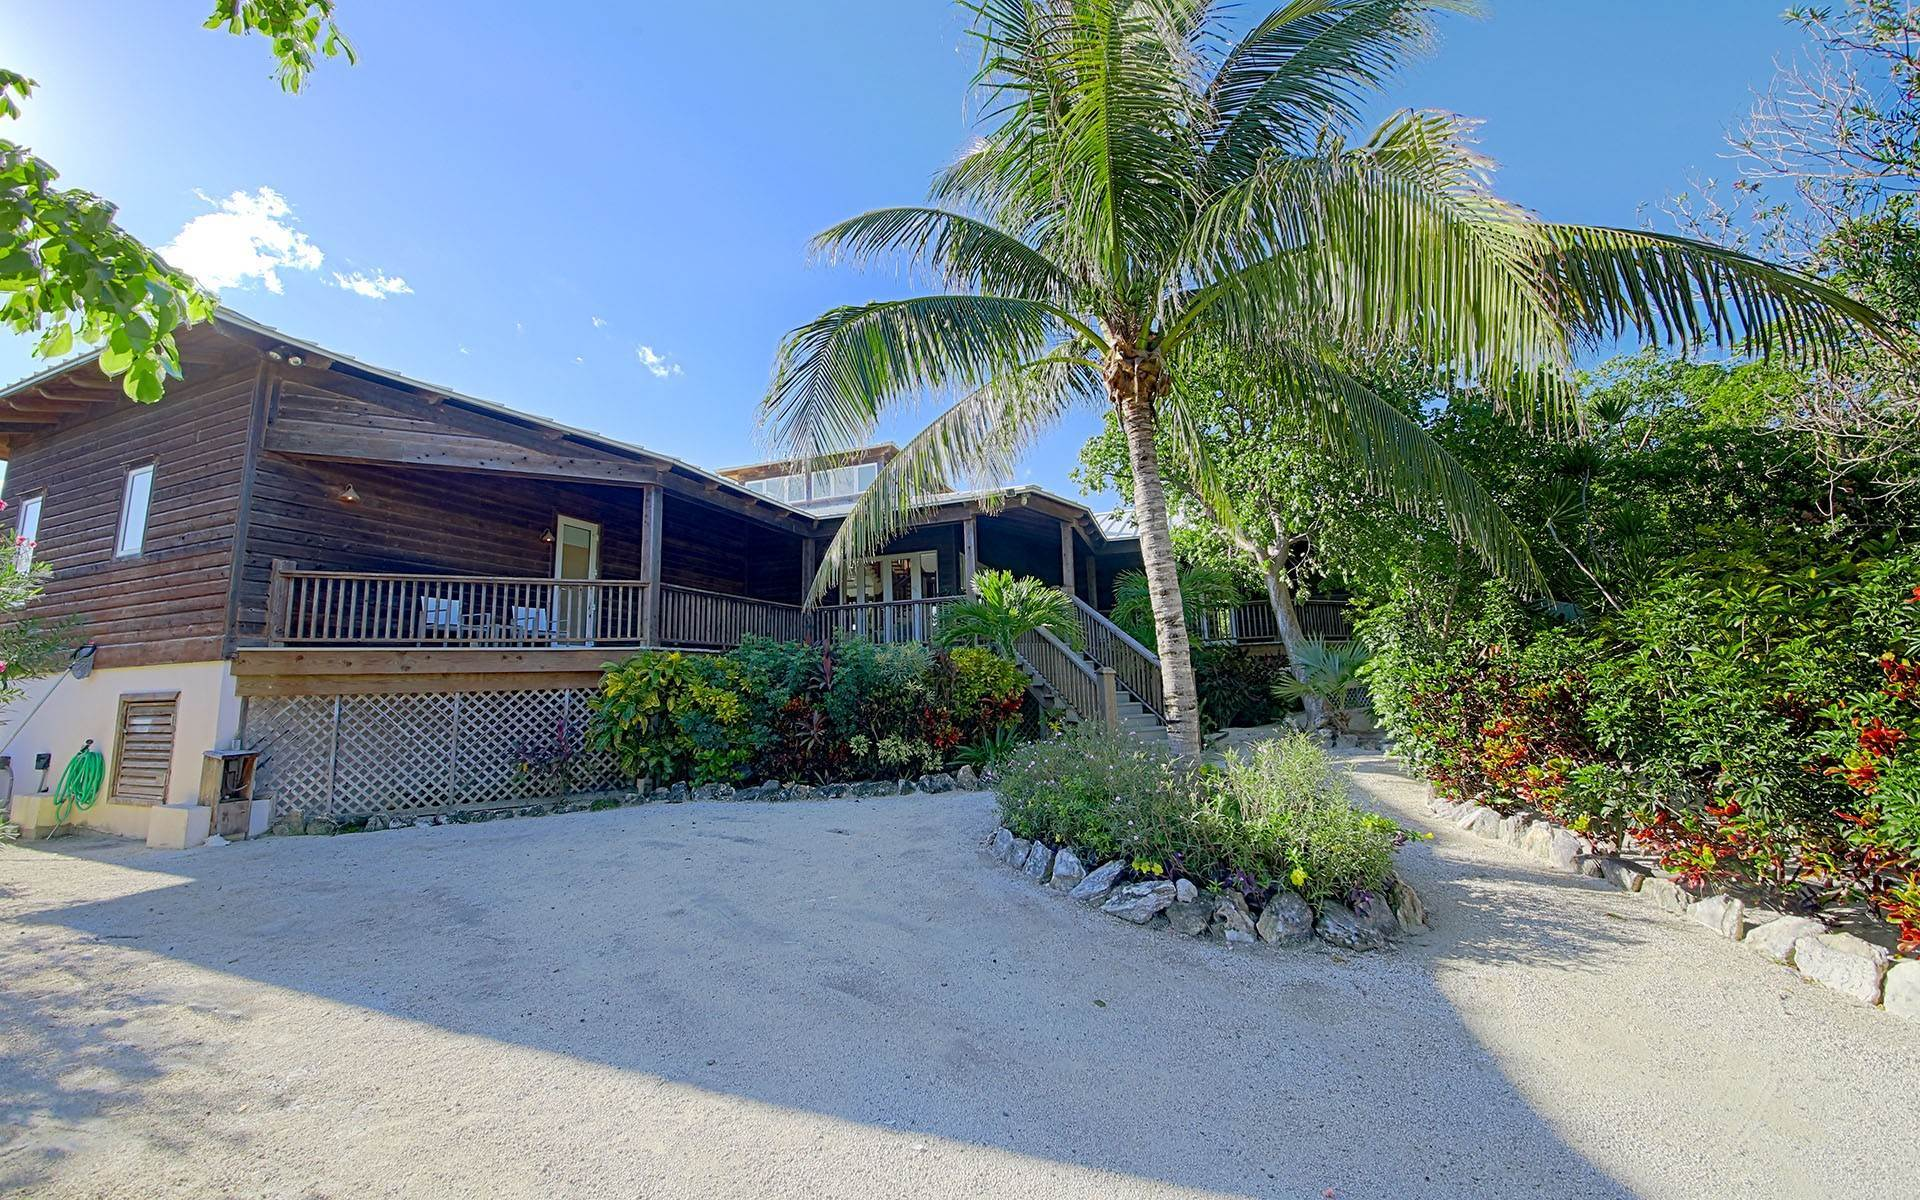 Single Family Home for Sale at Green Turtle - Winding Bay - MLS 31750 Abaco, Bahamas